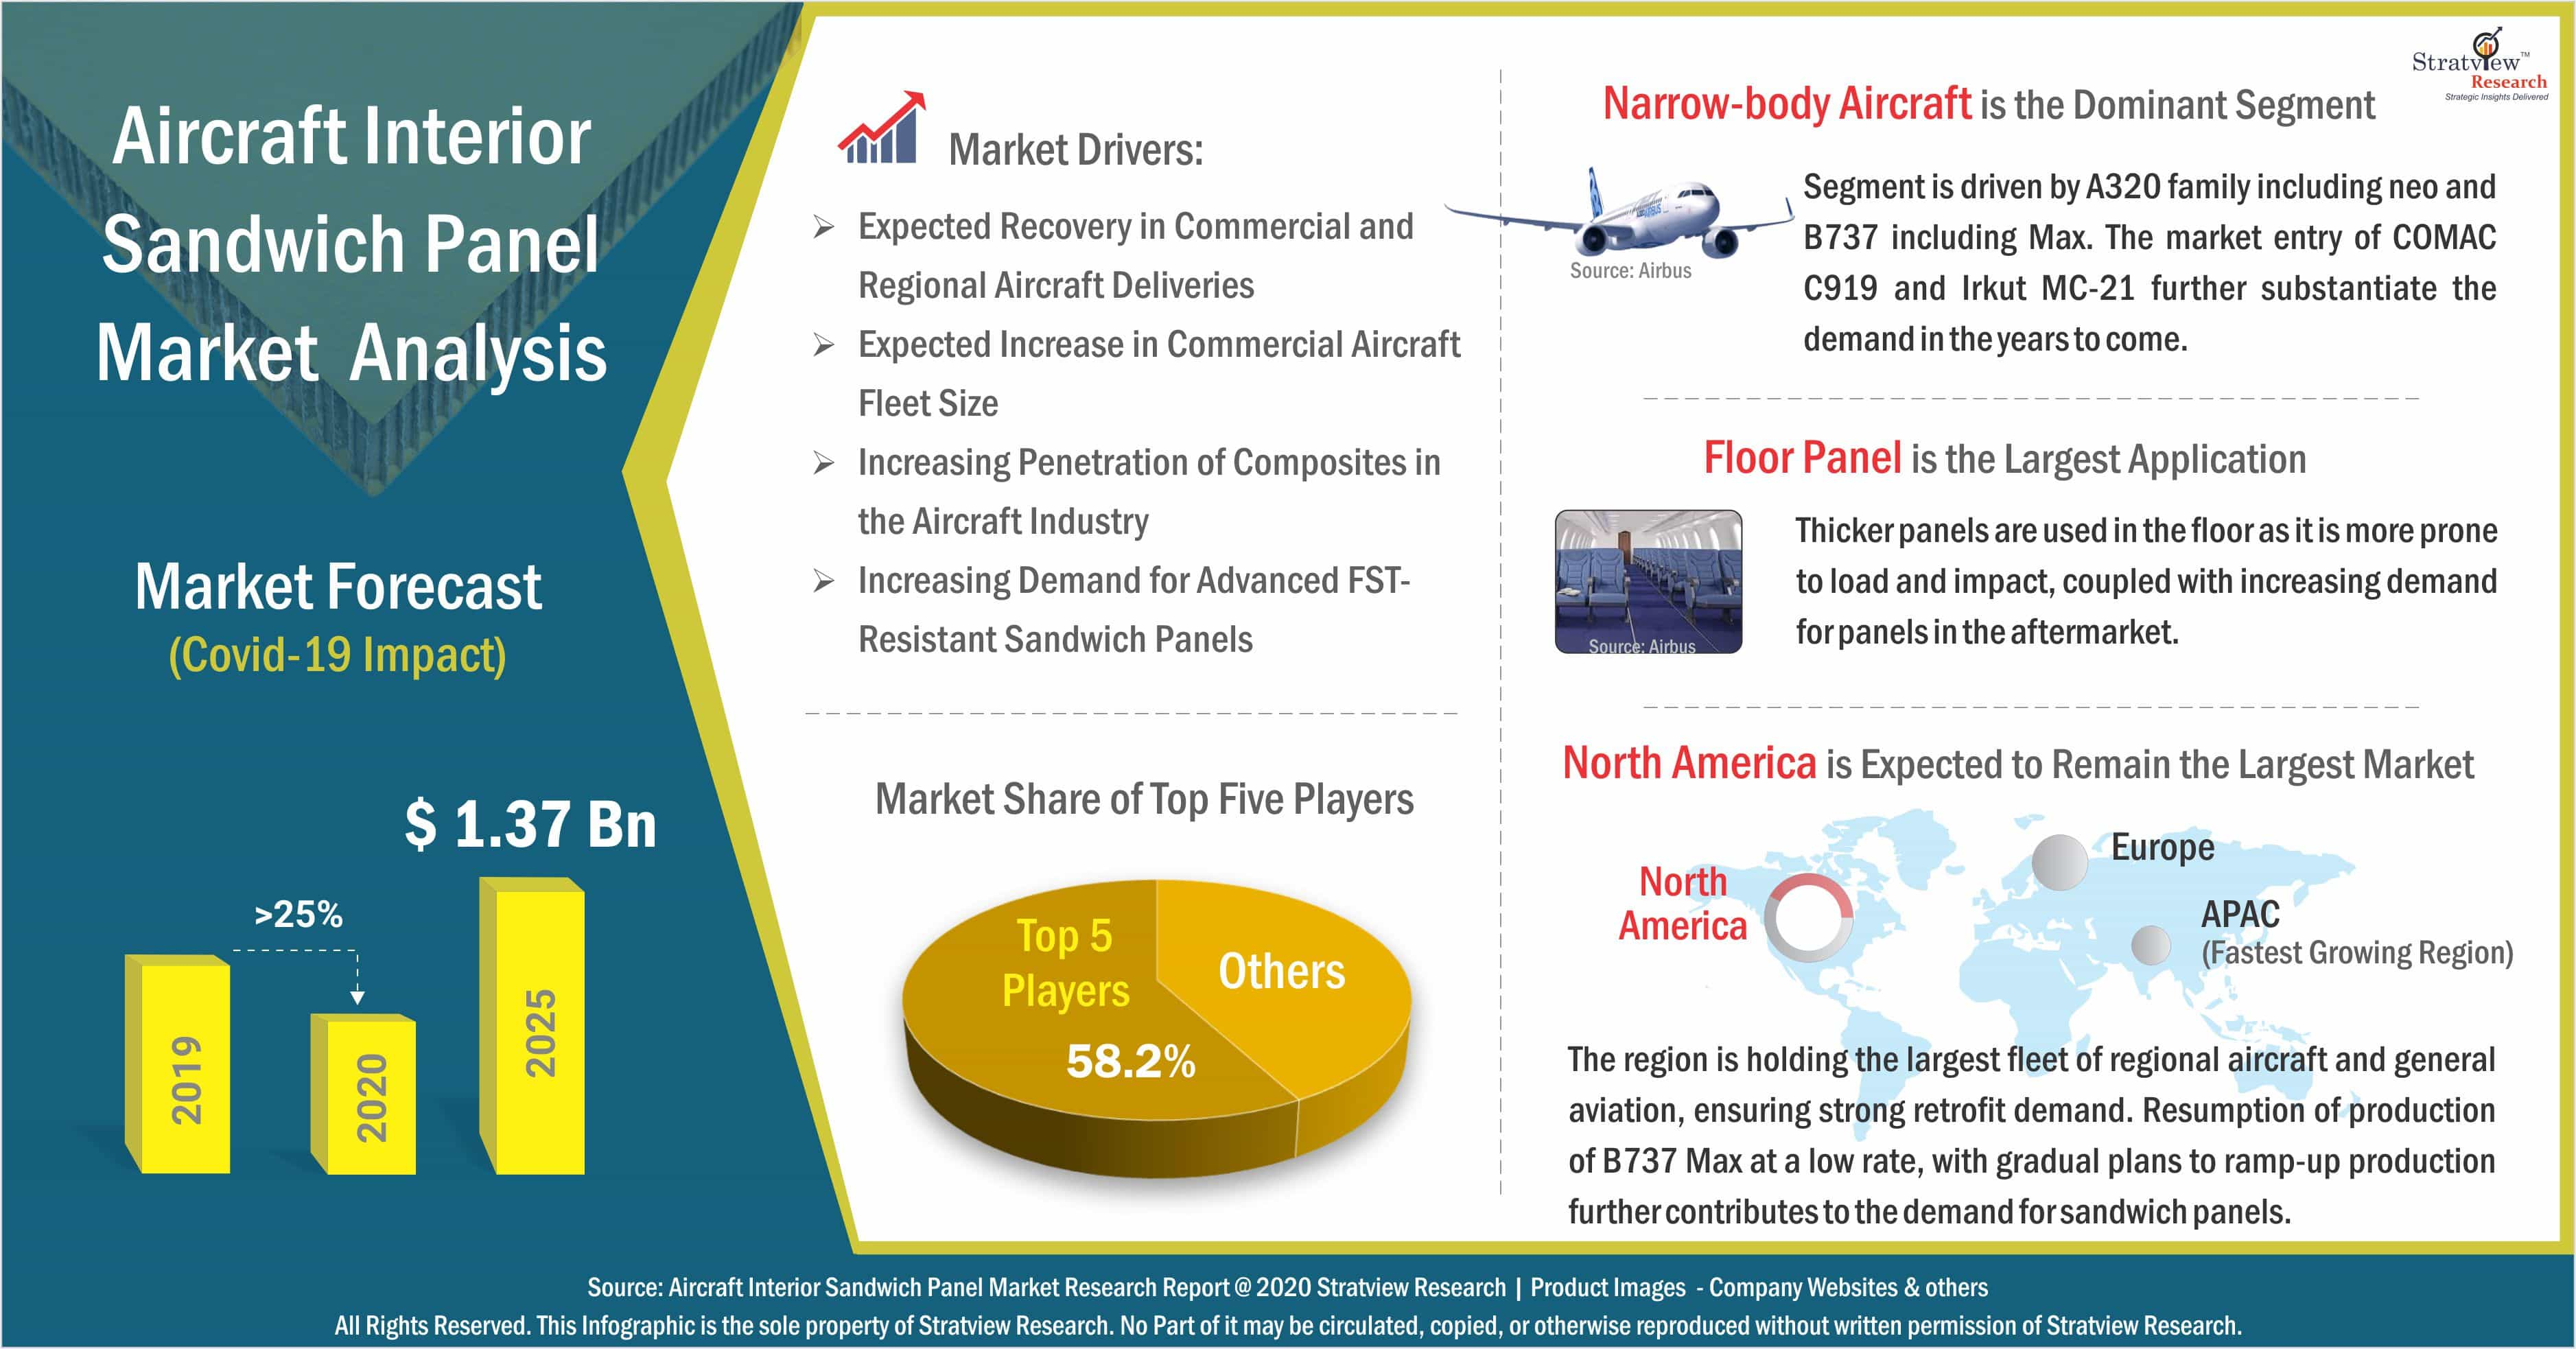 Aircraft Interior Sandwich Panel Market Analysis